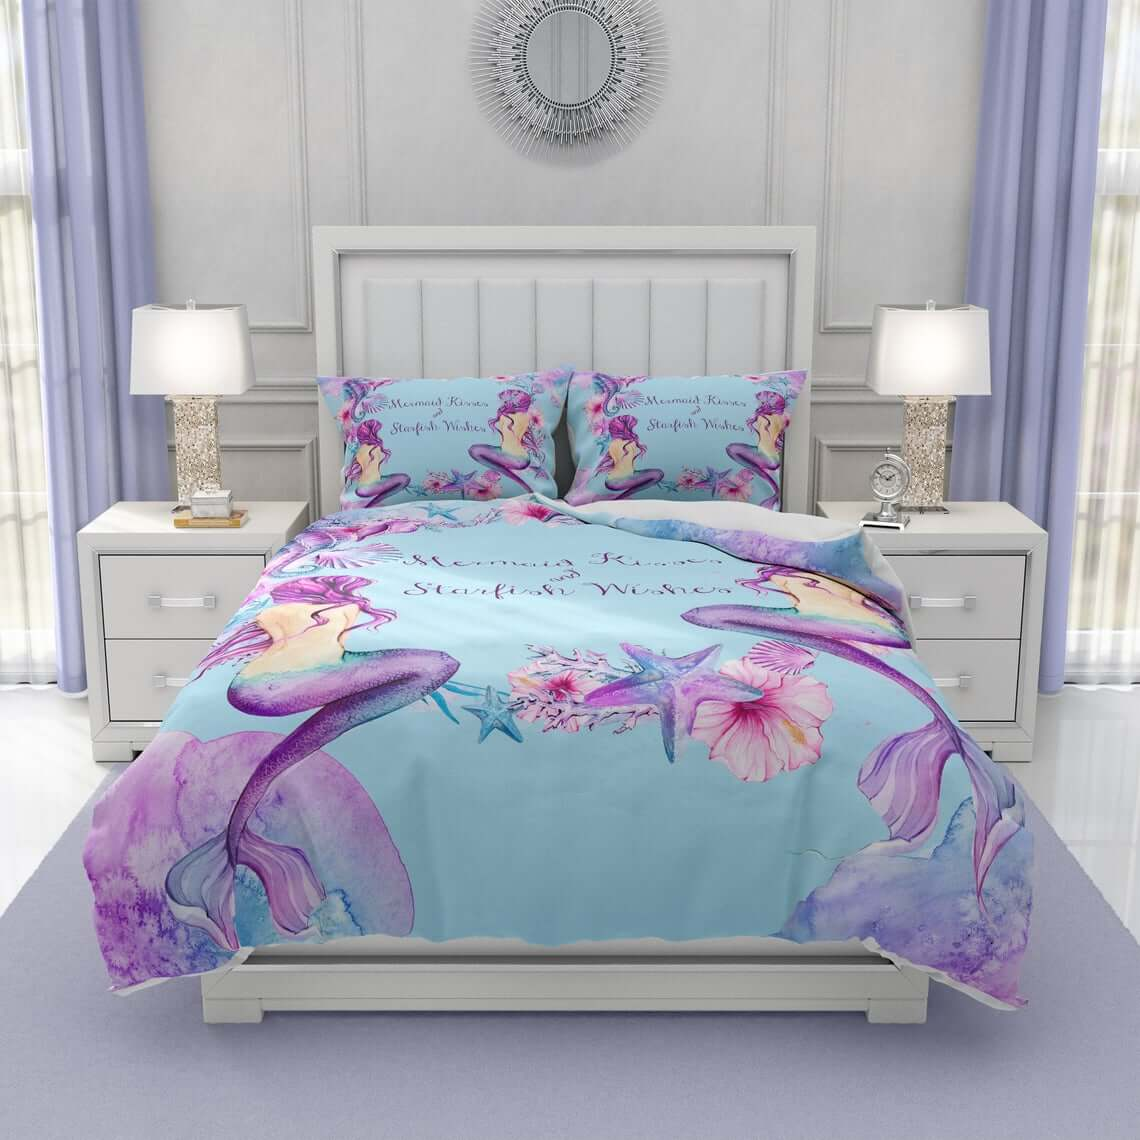 Spectacular Mermaid Themed Pillows and Beddings